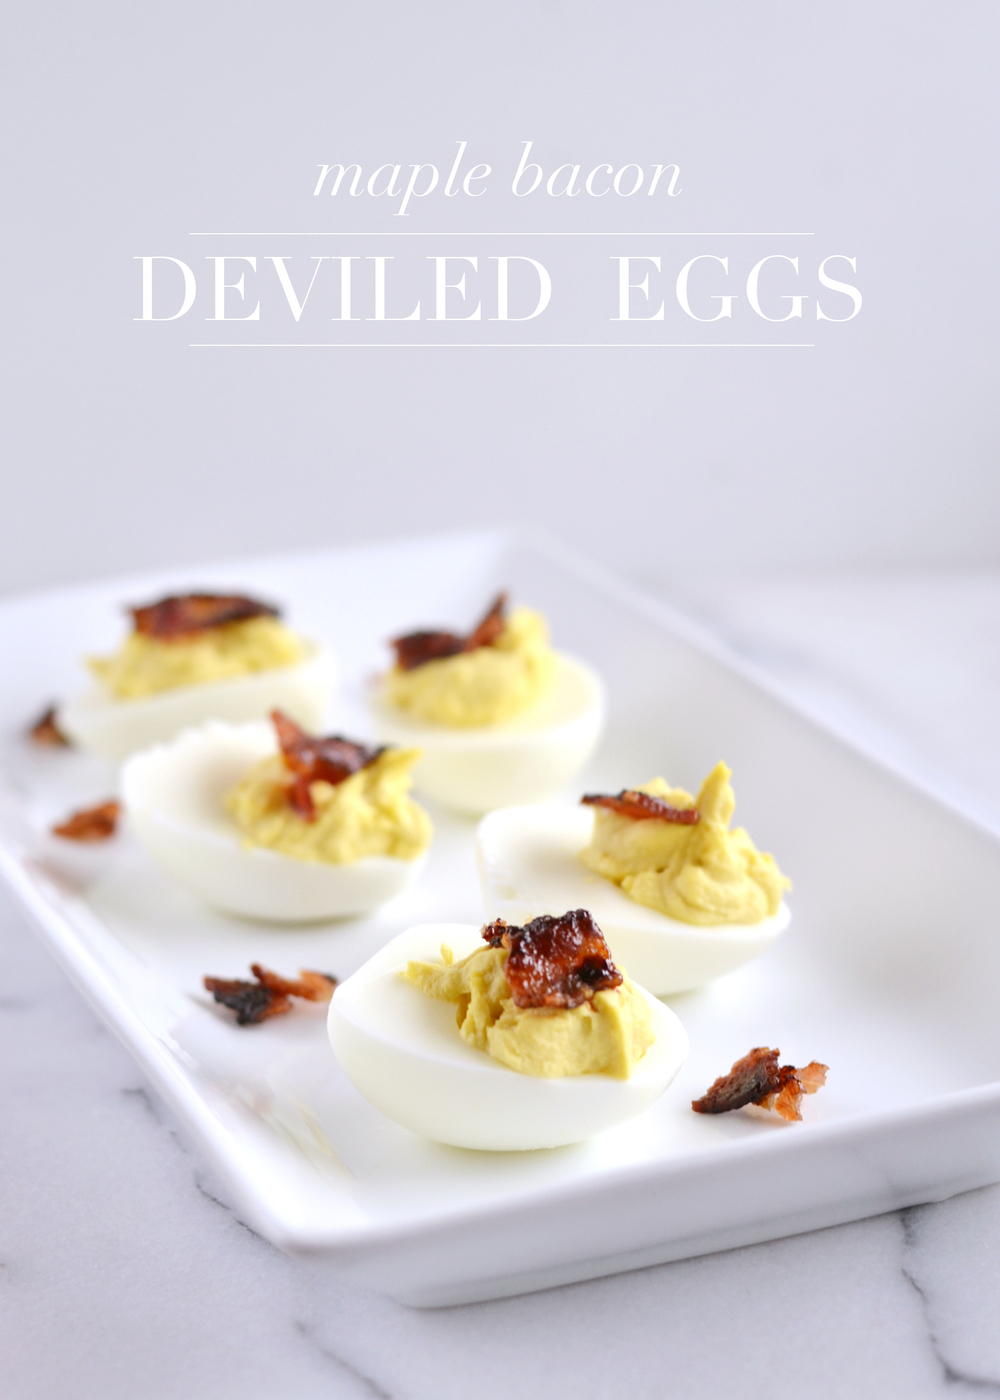 Delicious maple syrup deviled eggs, perfect for Easter or game day!  From boxwoodavenue.com